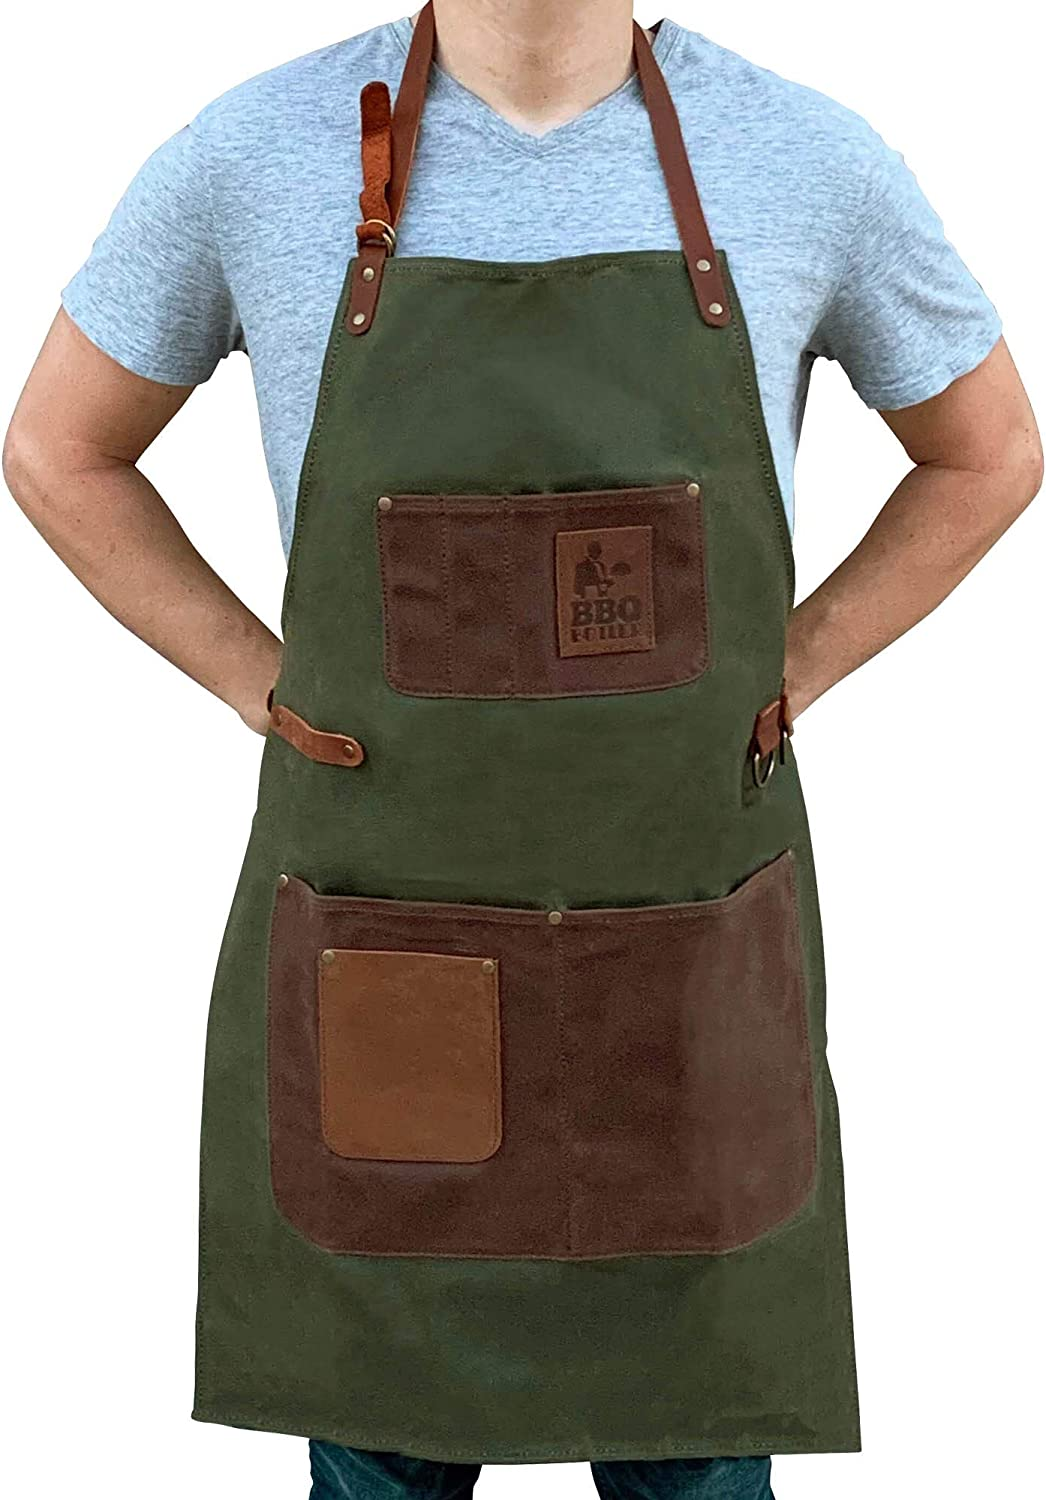 BBQ Butler Jacksonville Mall Grill Apron - Cooking Waxed Time sale Canvas Adjustable